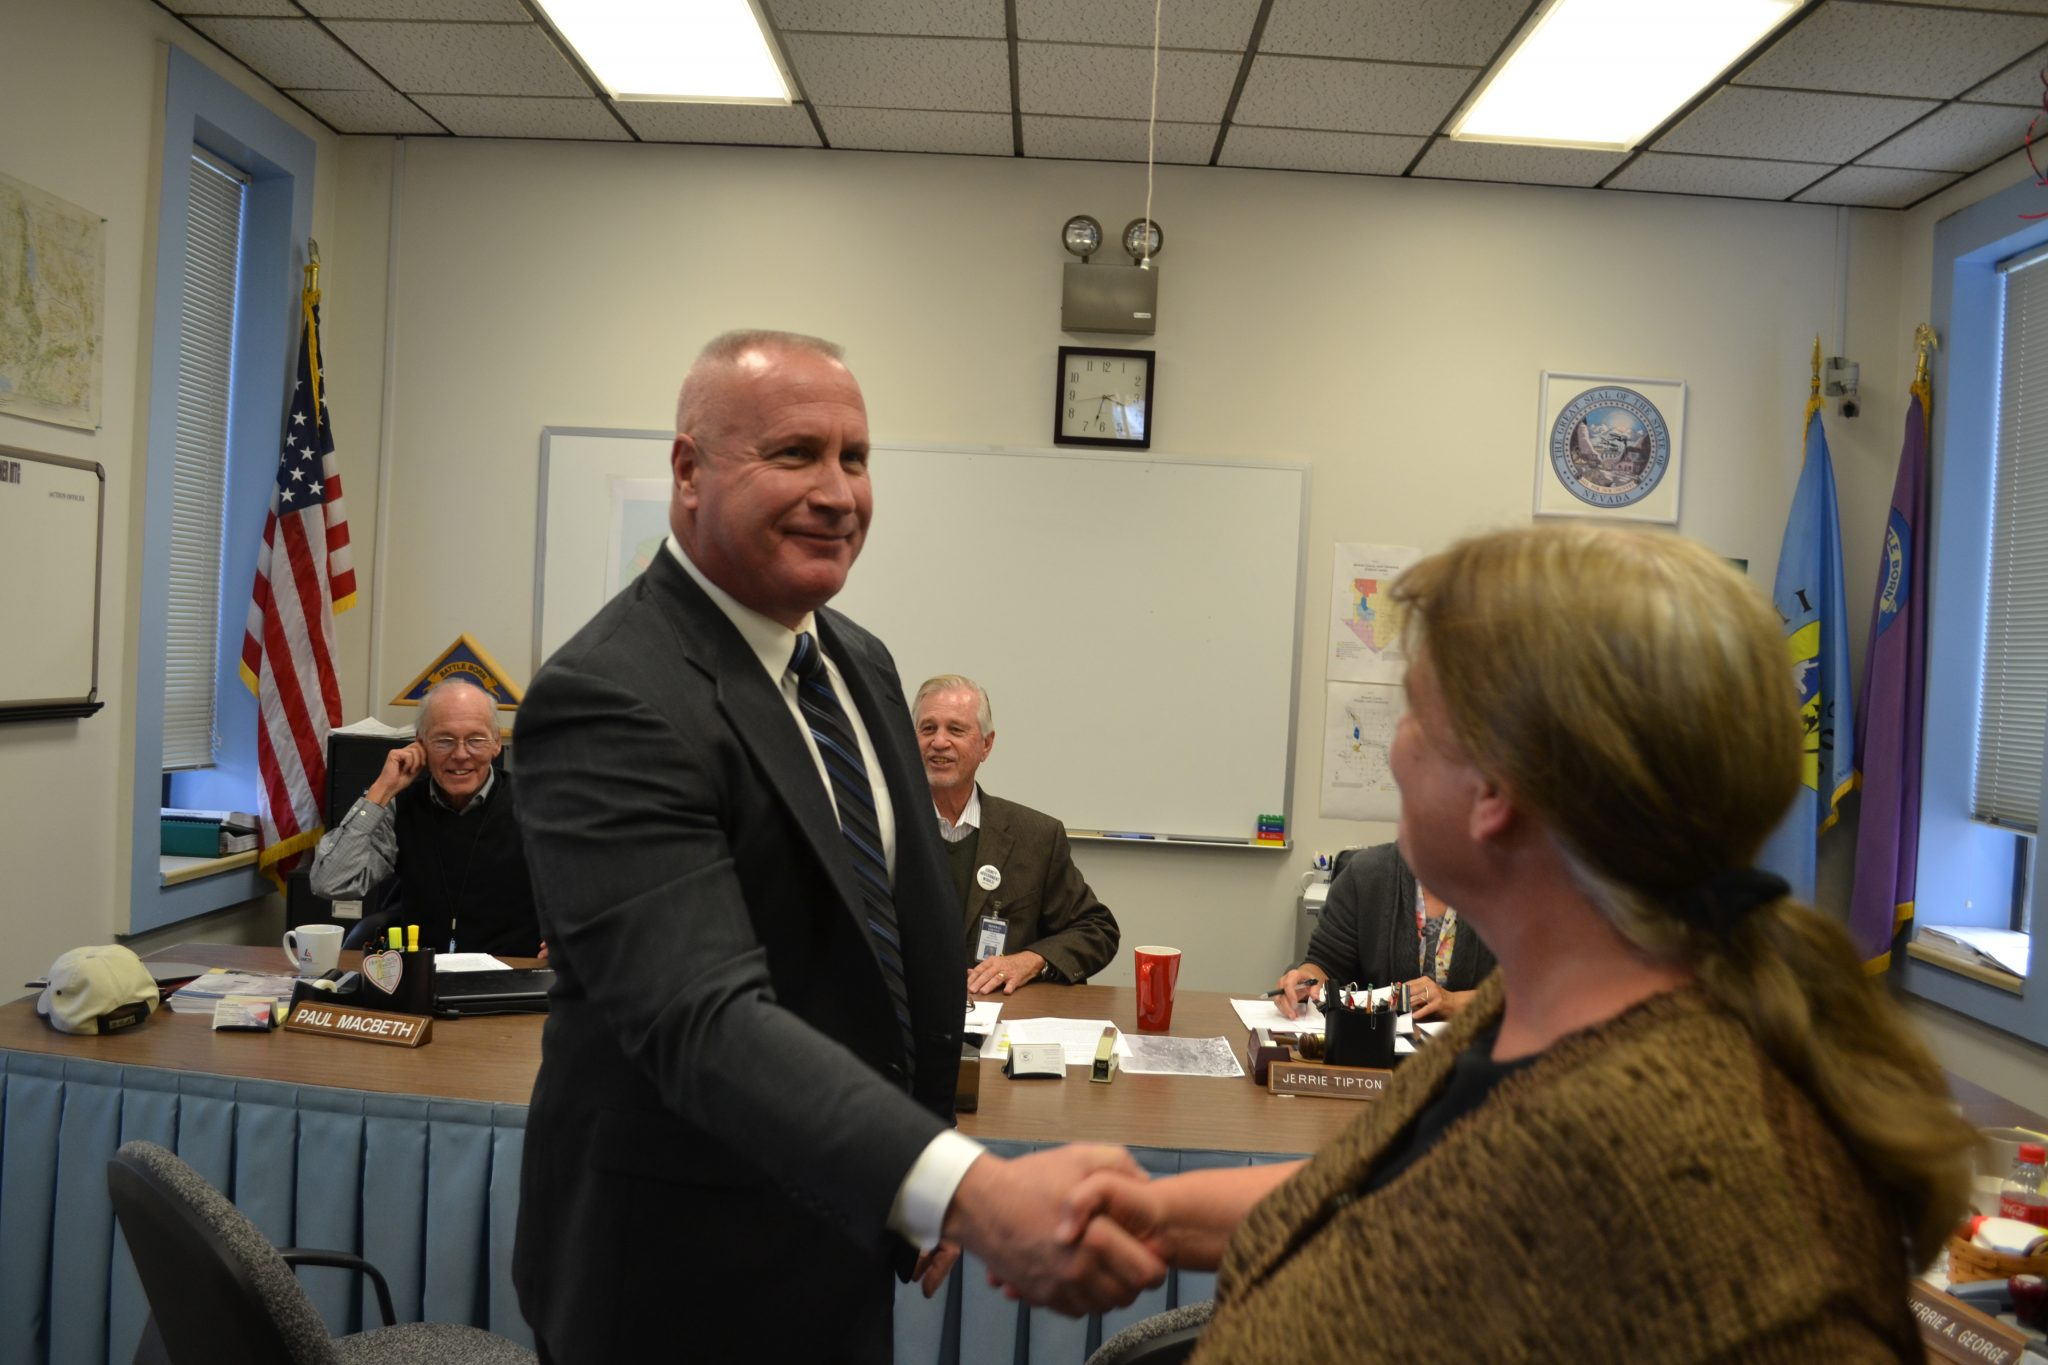 Board offers Mineral County Sheriff's badge to Handte